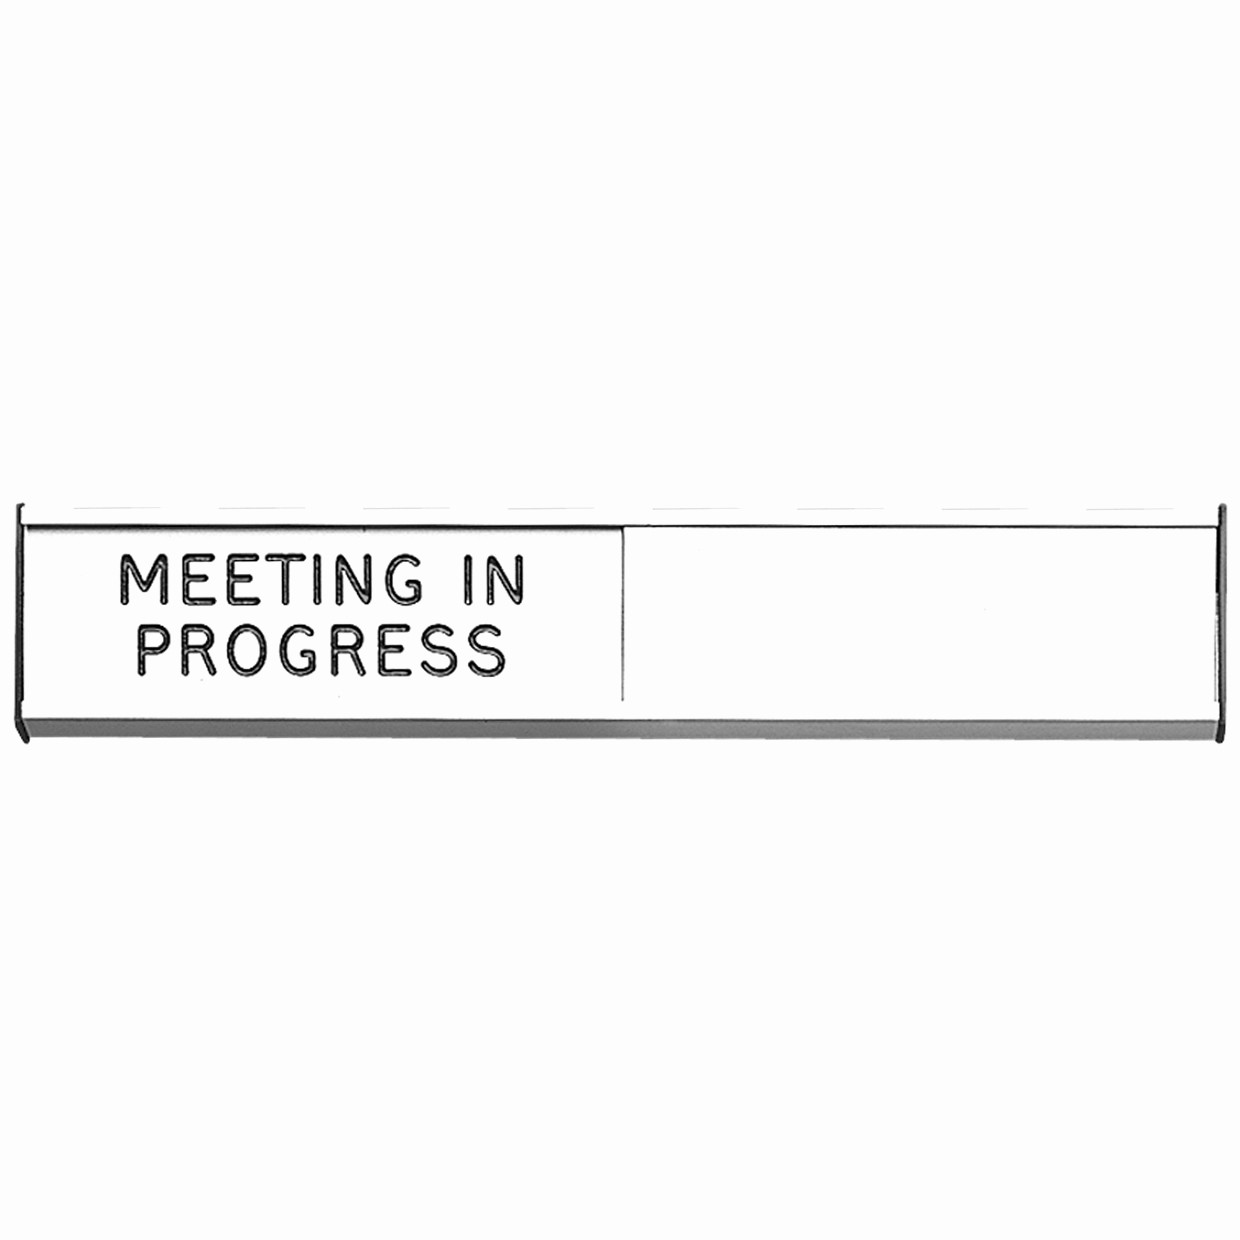 Meeting In Progress Door Signs Awesome Sliding Door Sign Meeting In Progress or Blank Mipb